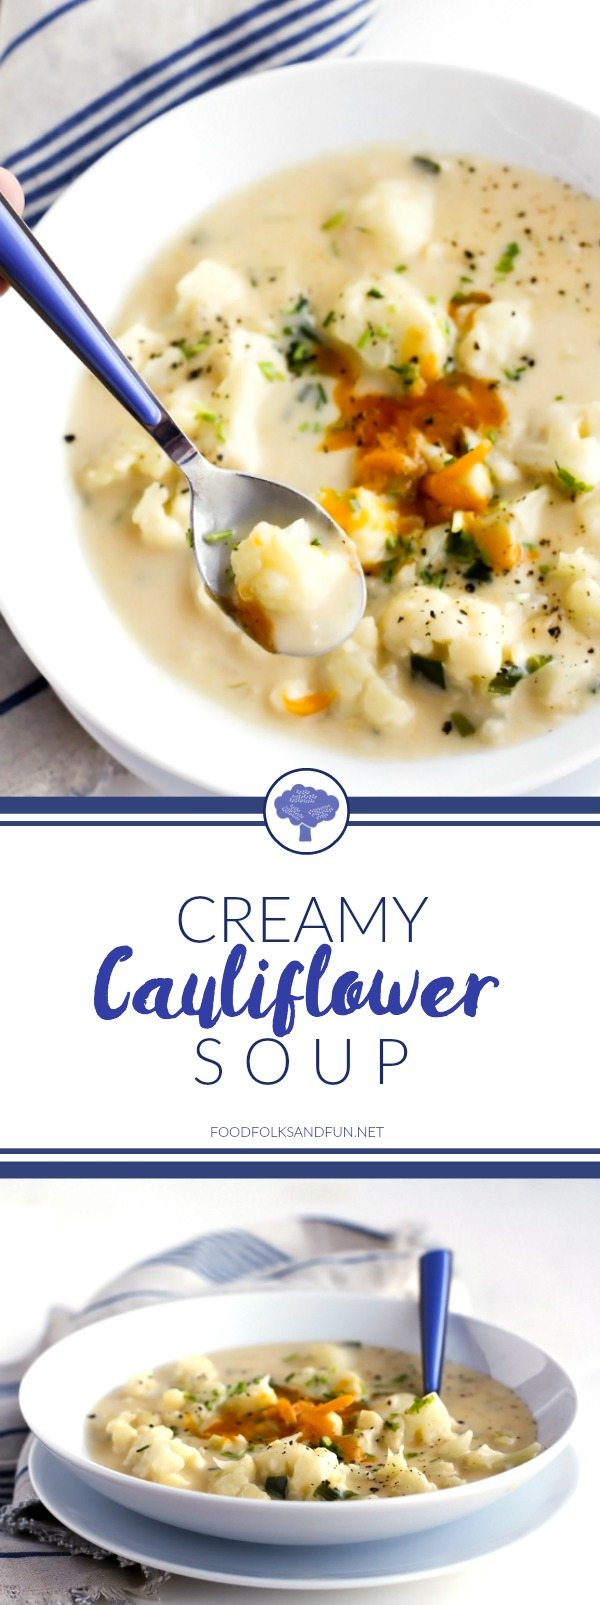 This Creamy Cauliflower Soup recipe is savory, cheesy, and filled with tender chunks of cauliflower plus all of the comforts of a home-cooked meal!